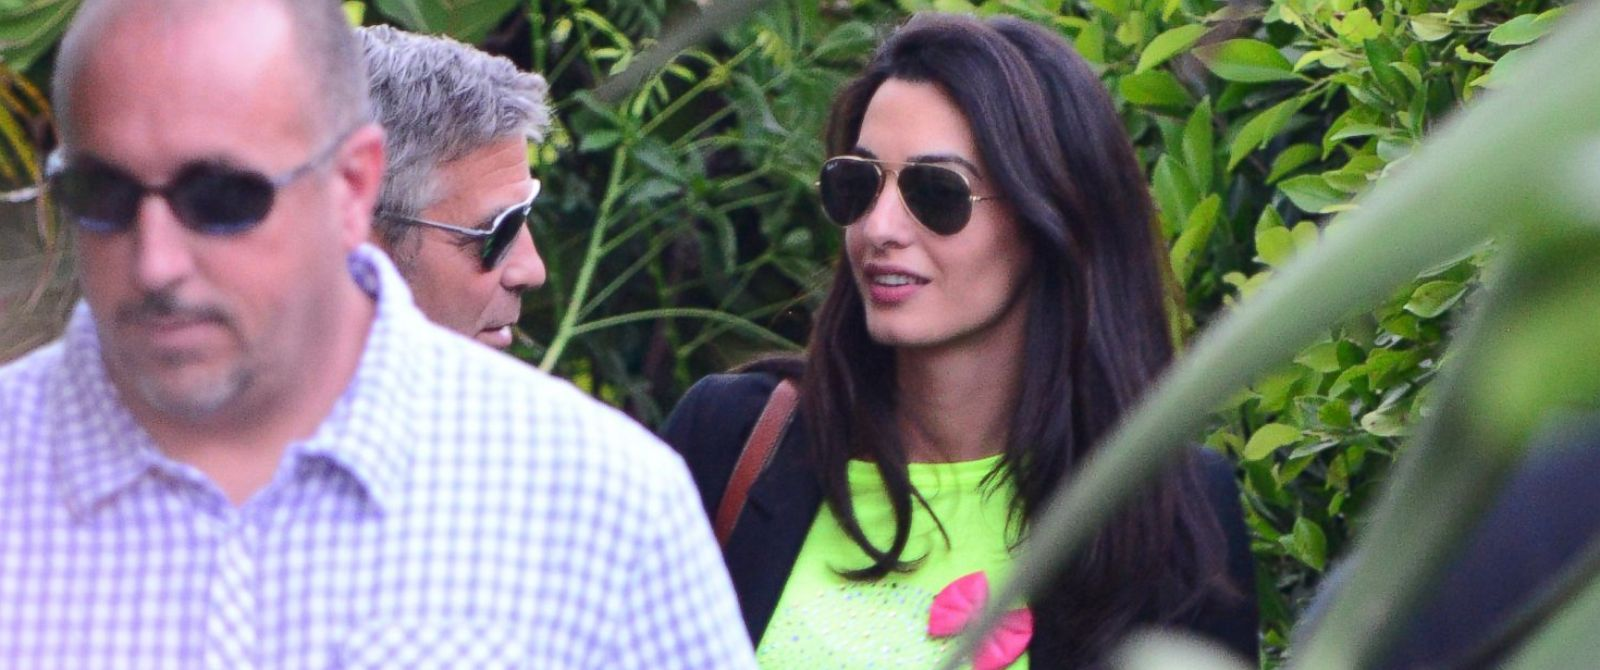 PHOTO: George Clooney and Amal Alamuddin leaving Cafe Habana Malibu on May 11, 2014.